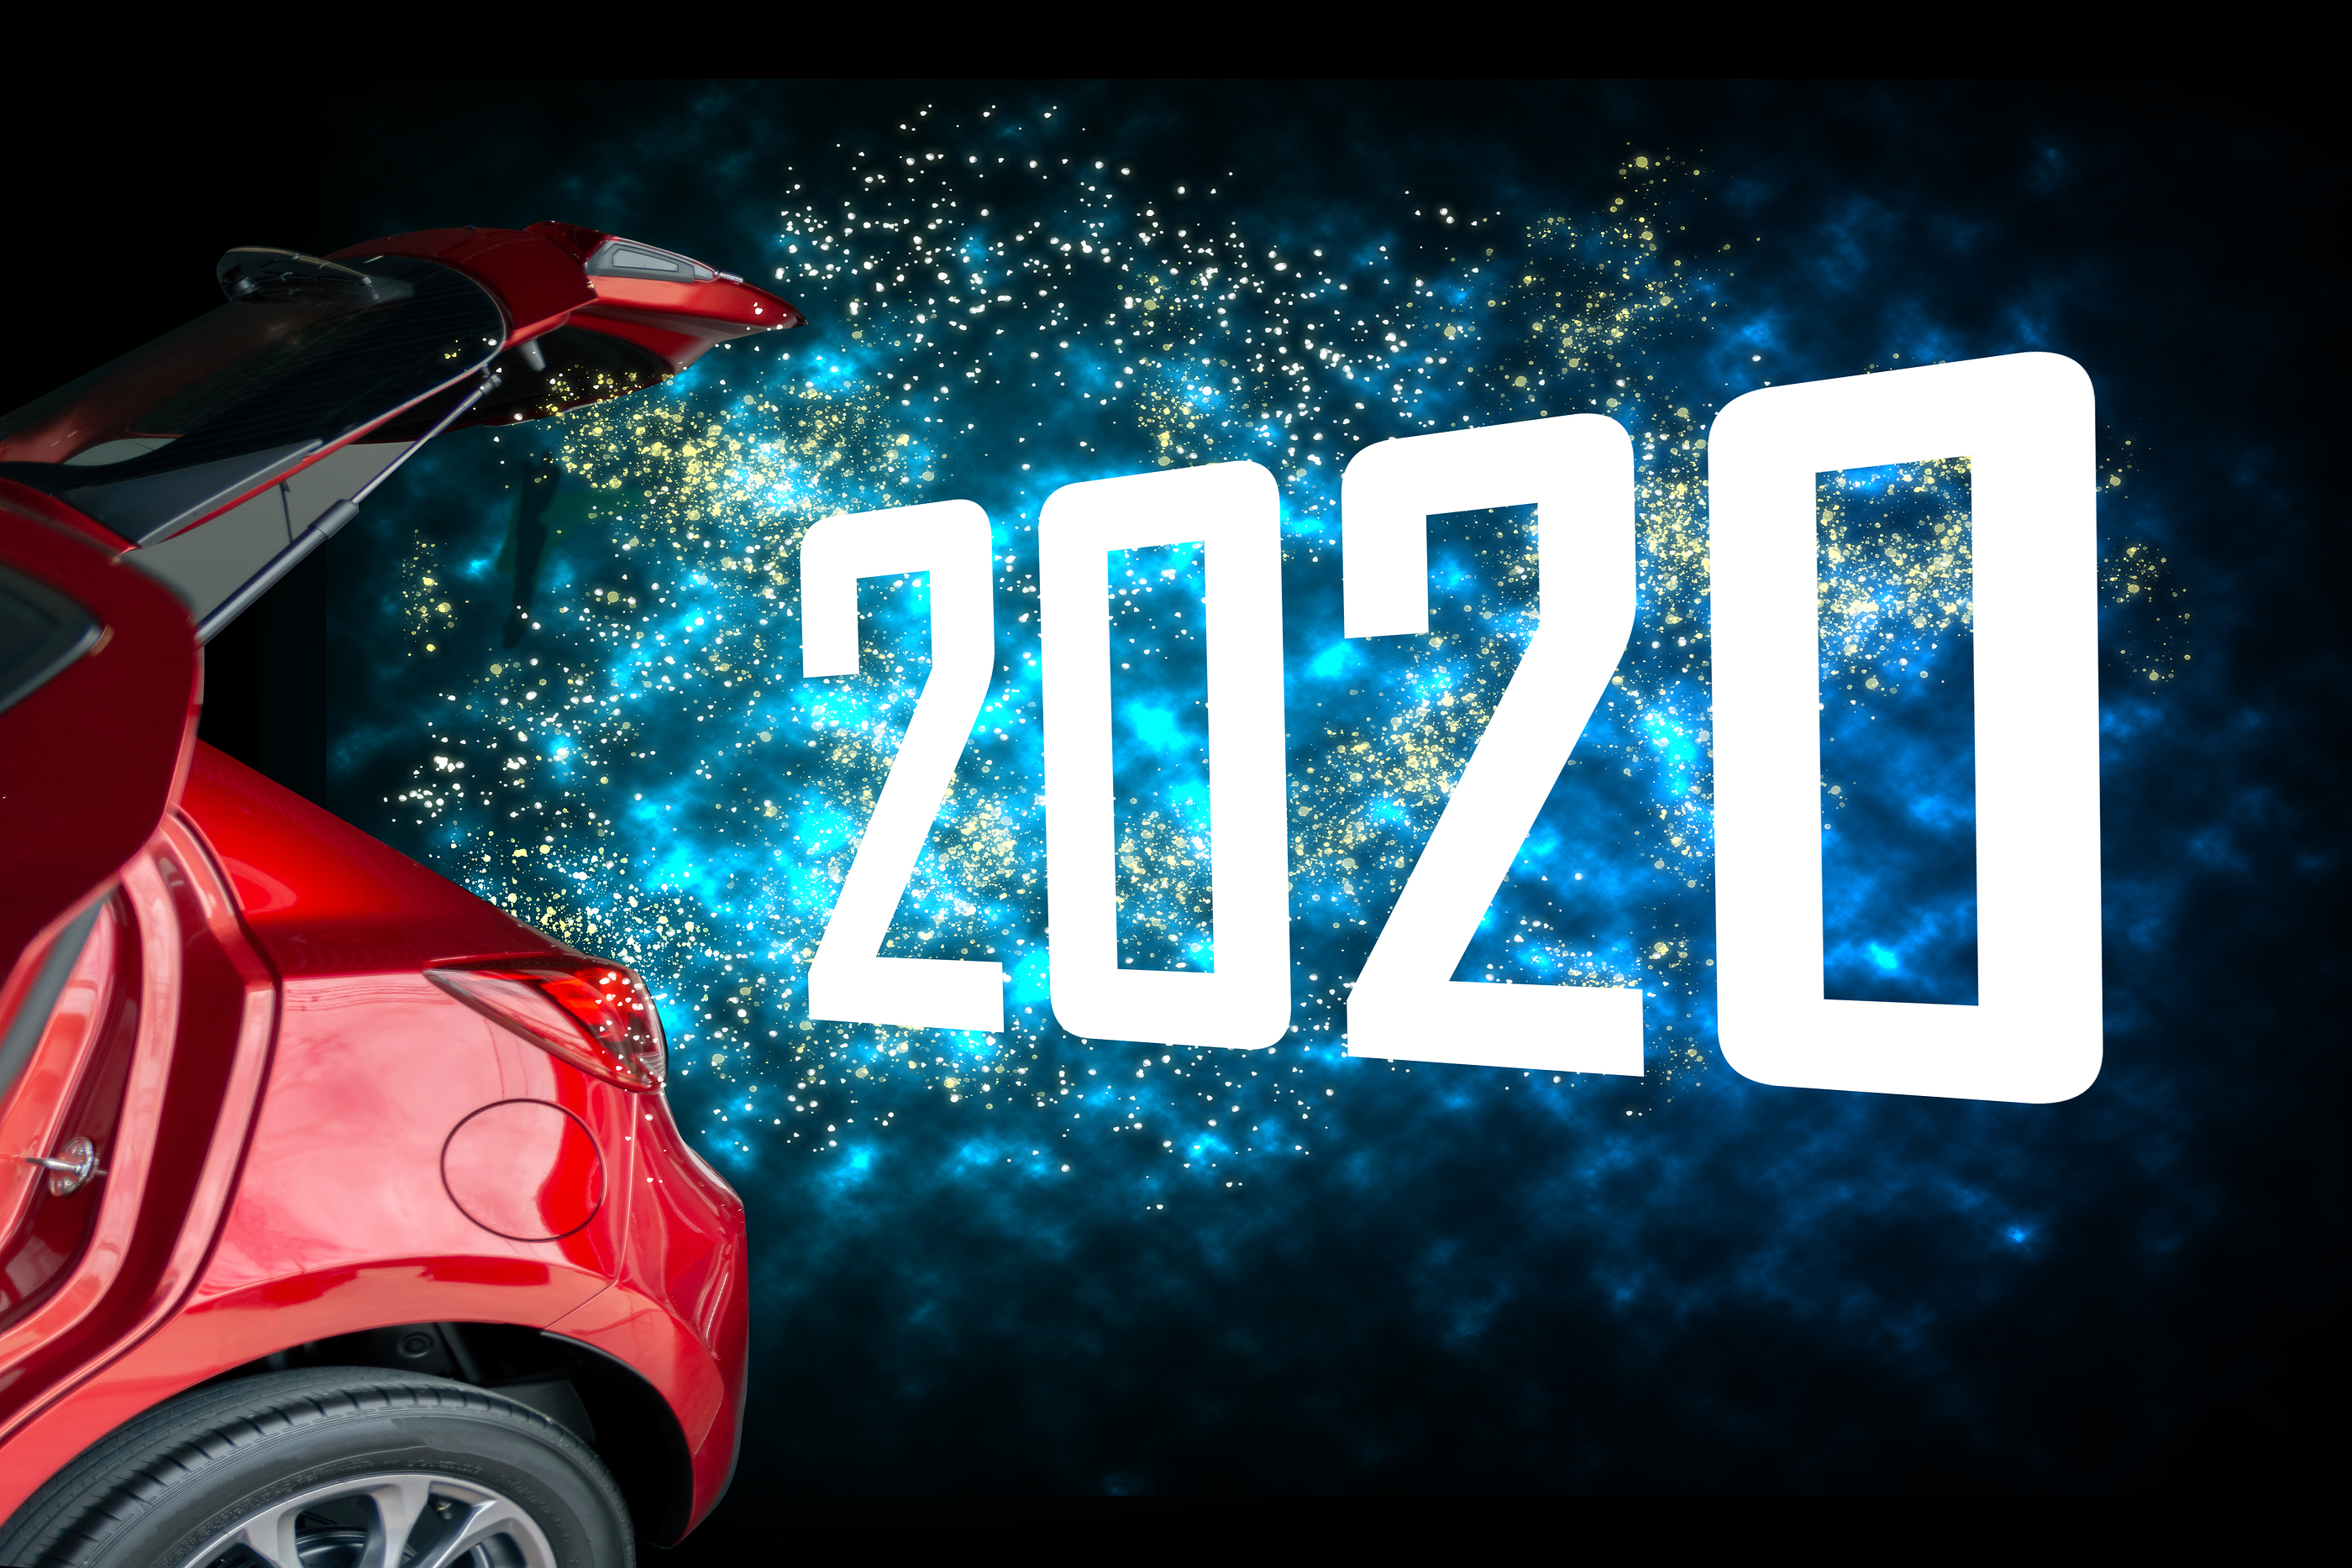 Red car boot open with the word '2020' exploding out of it